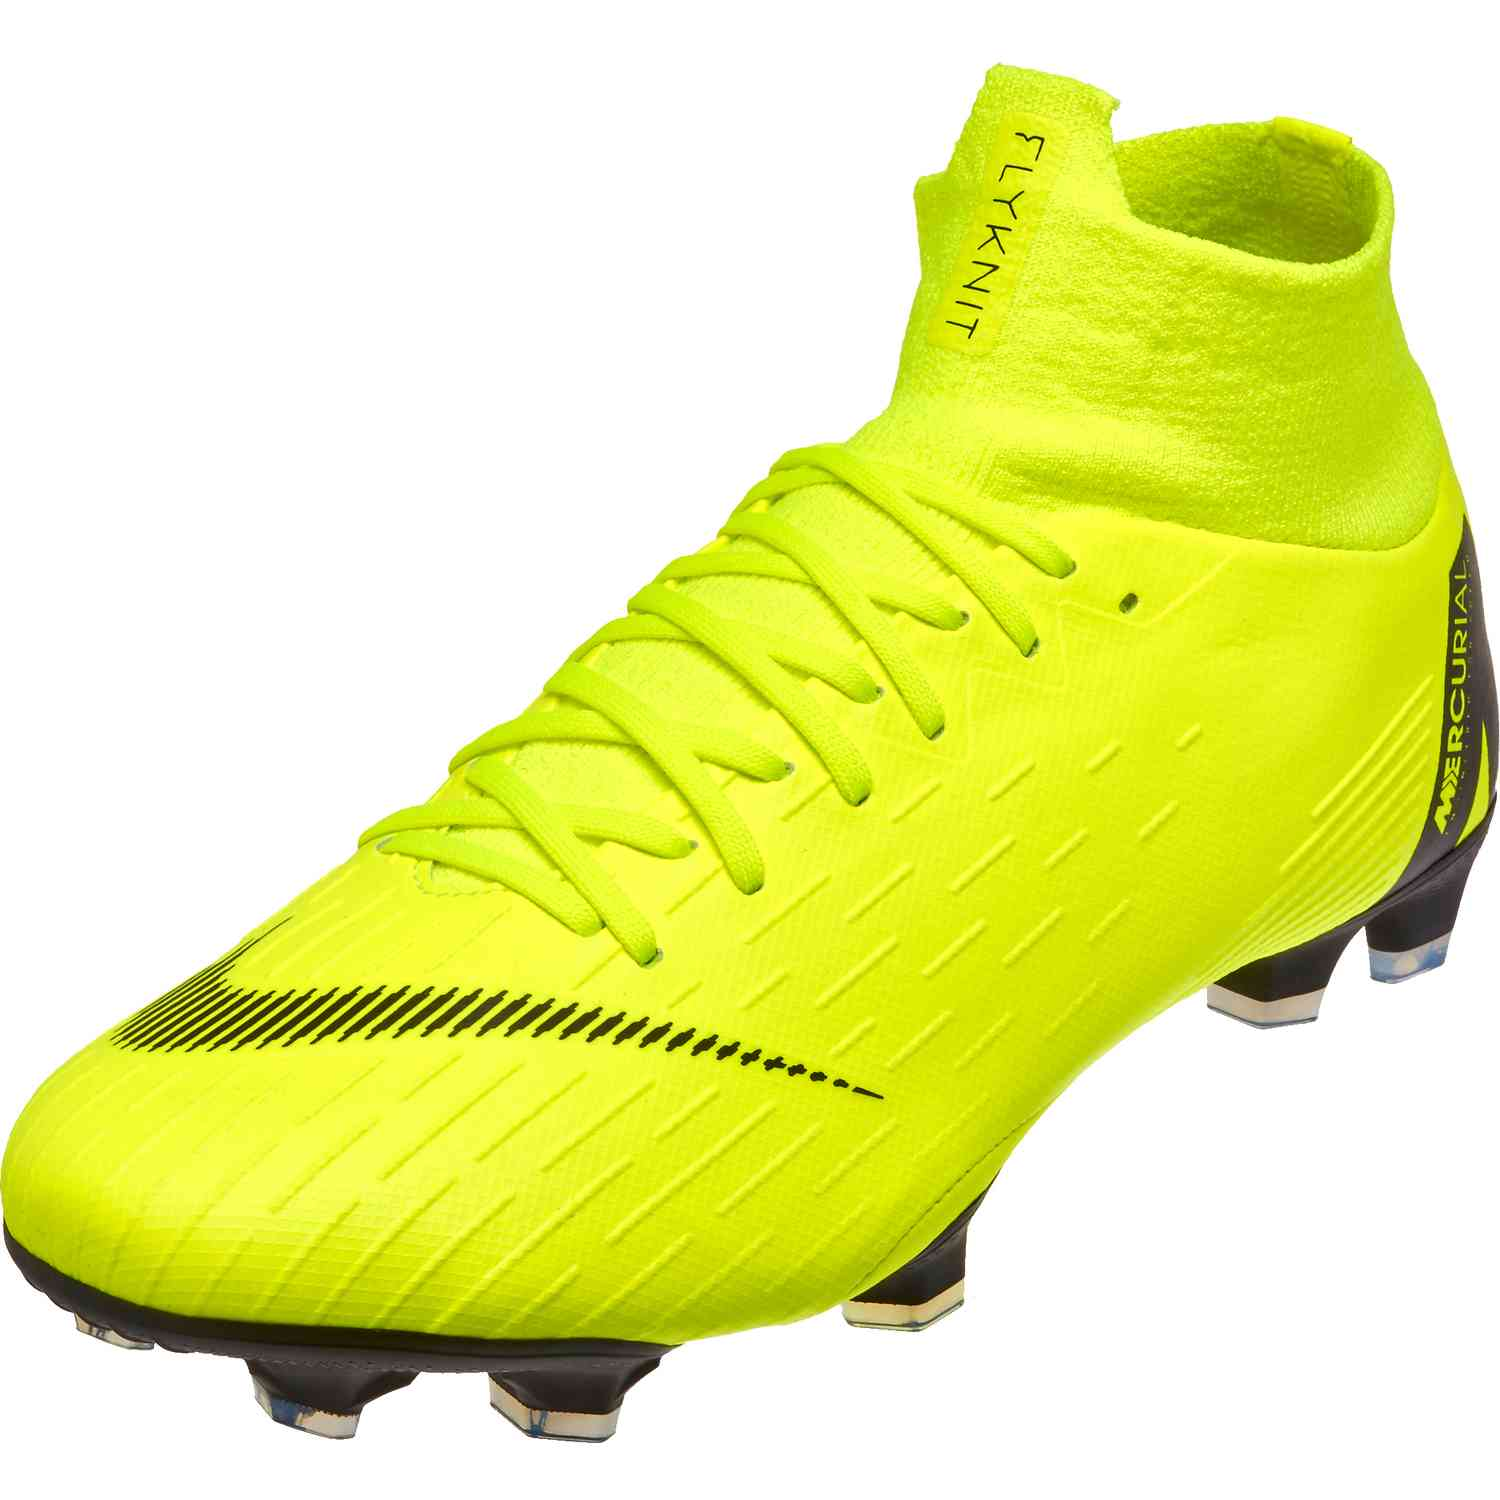 the best attitude 1c1bb 43ee0 Nike Mercurial Superfly 6 Pro FG – Volt Black